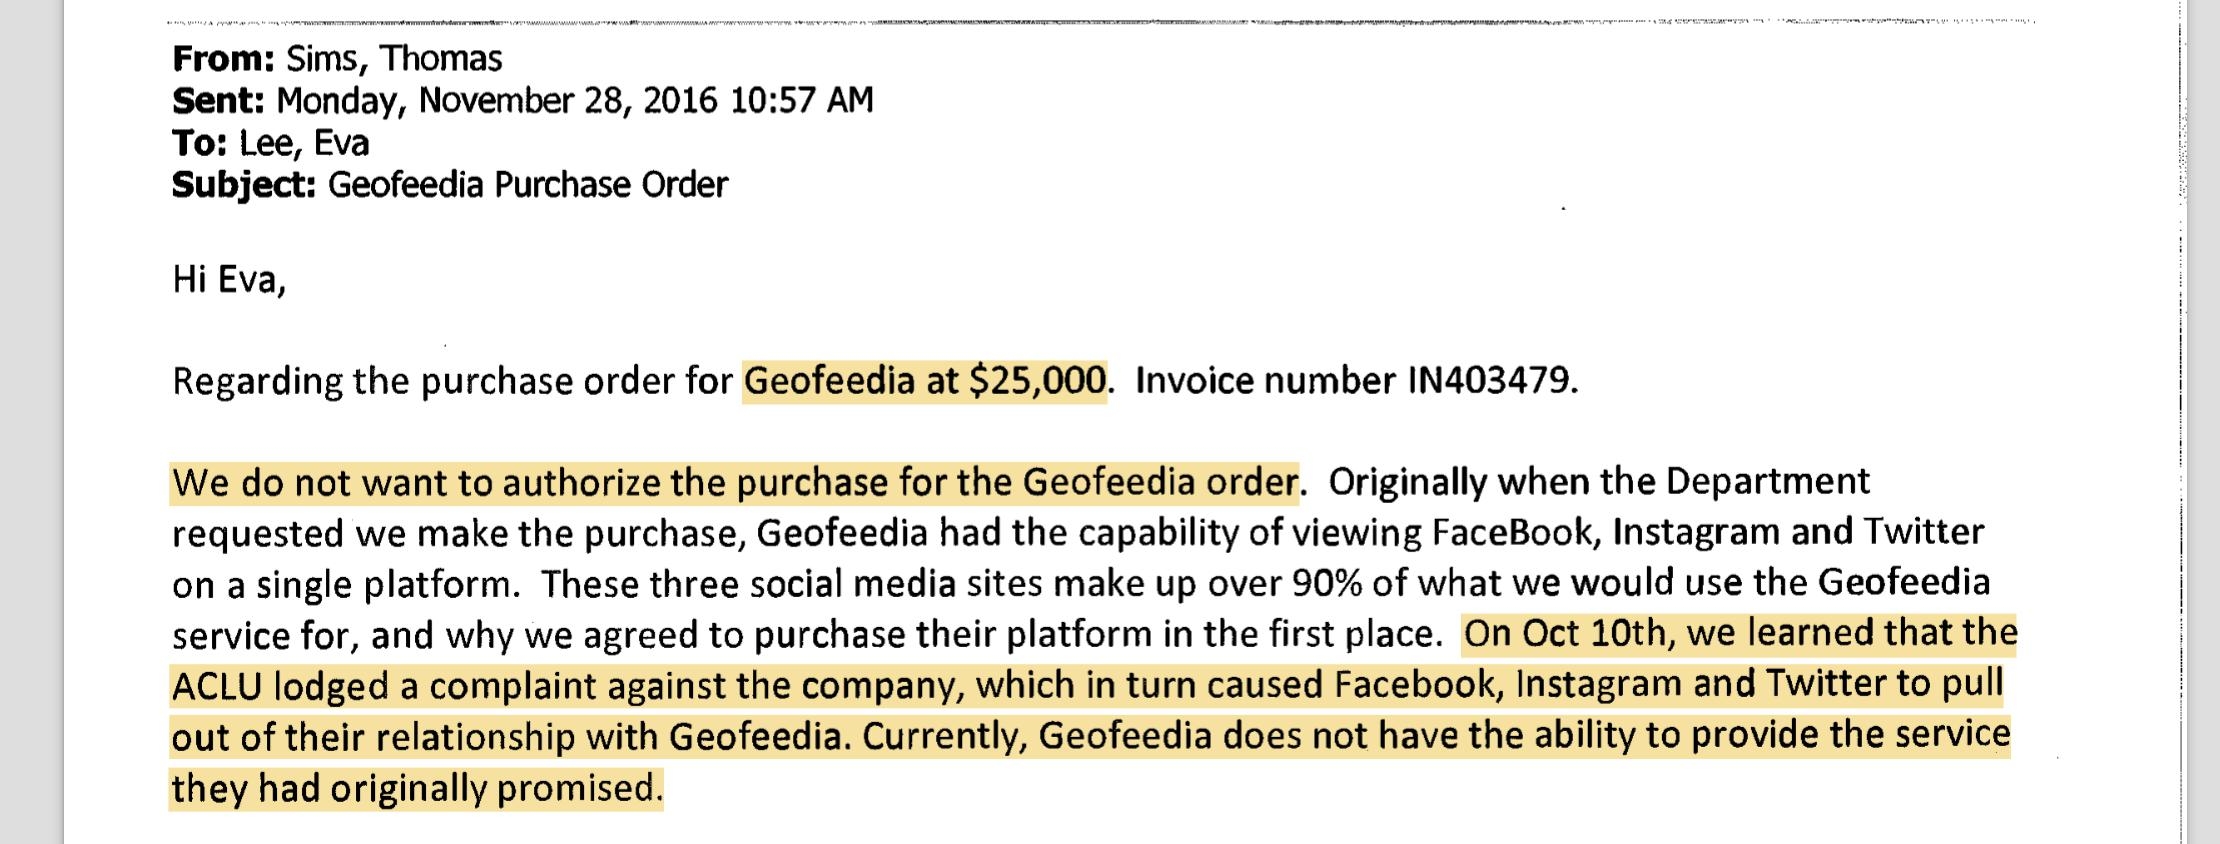 Excerpt of email from San Jose Police Lt. Thomas Sims explaining why they have decided not to renew their $25,000 annual subscription to the Geofeedia social media surveillance service.